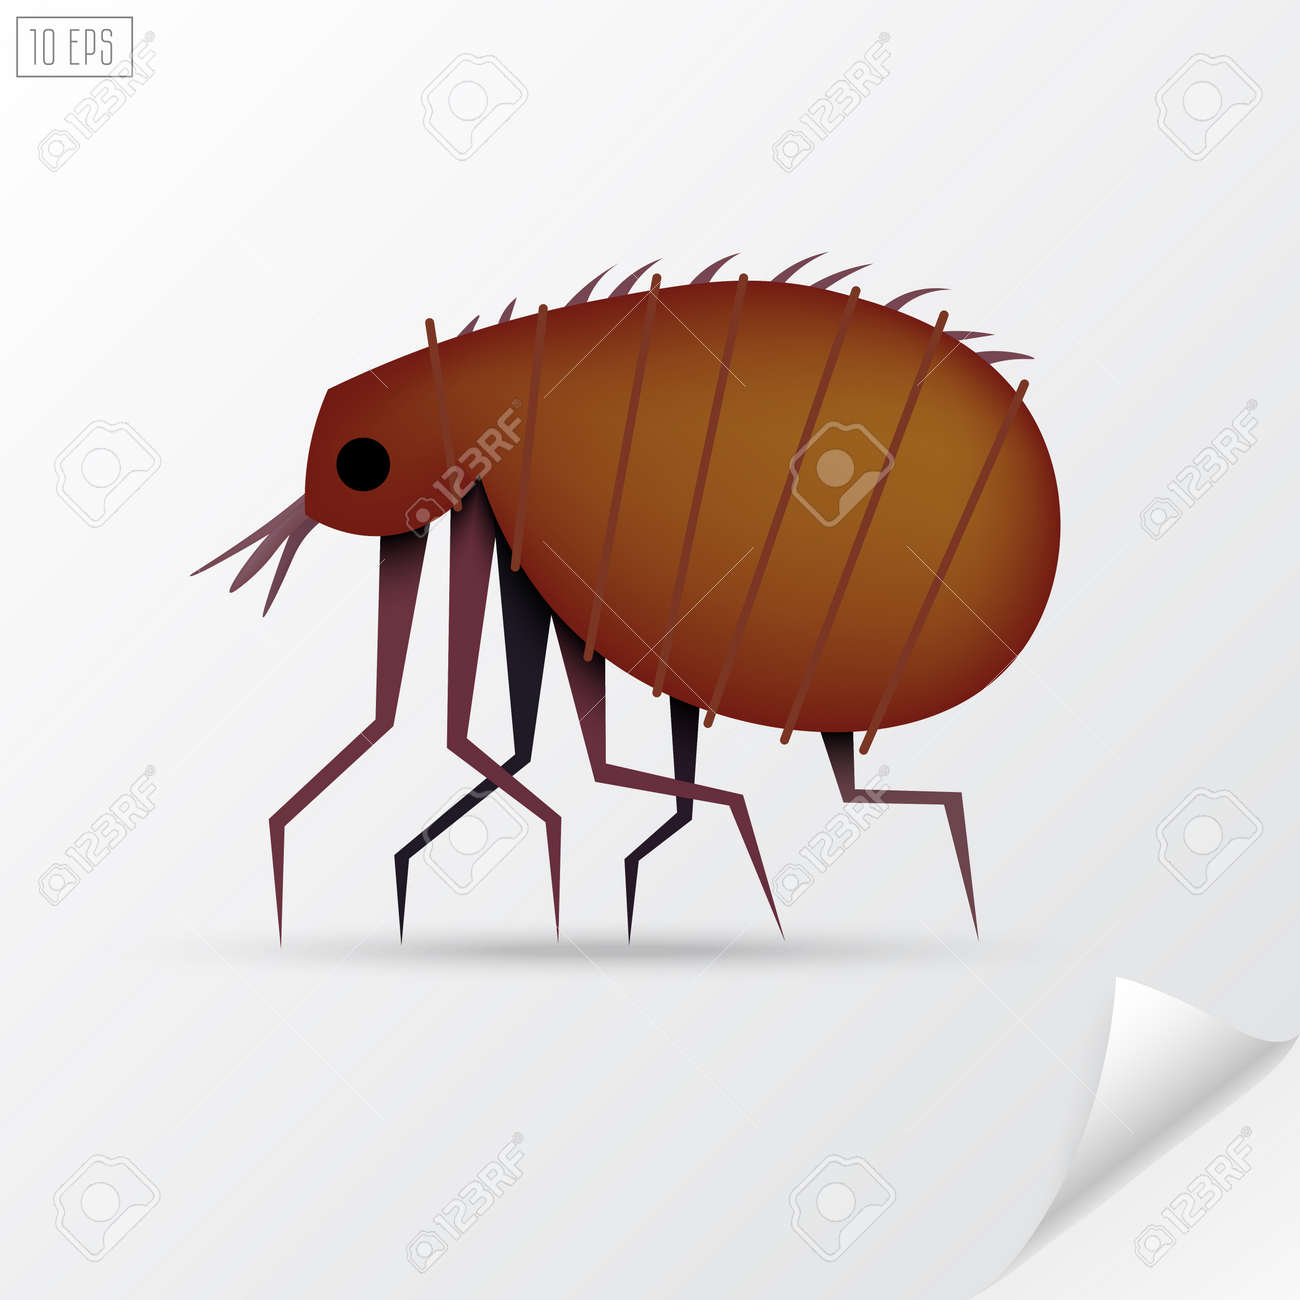 Cartoon brown insect flea in material style - 52131228